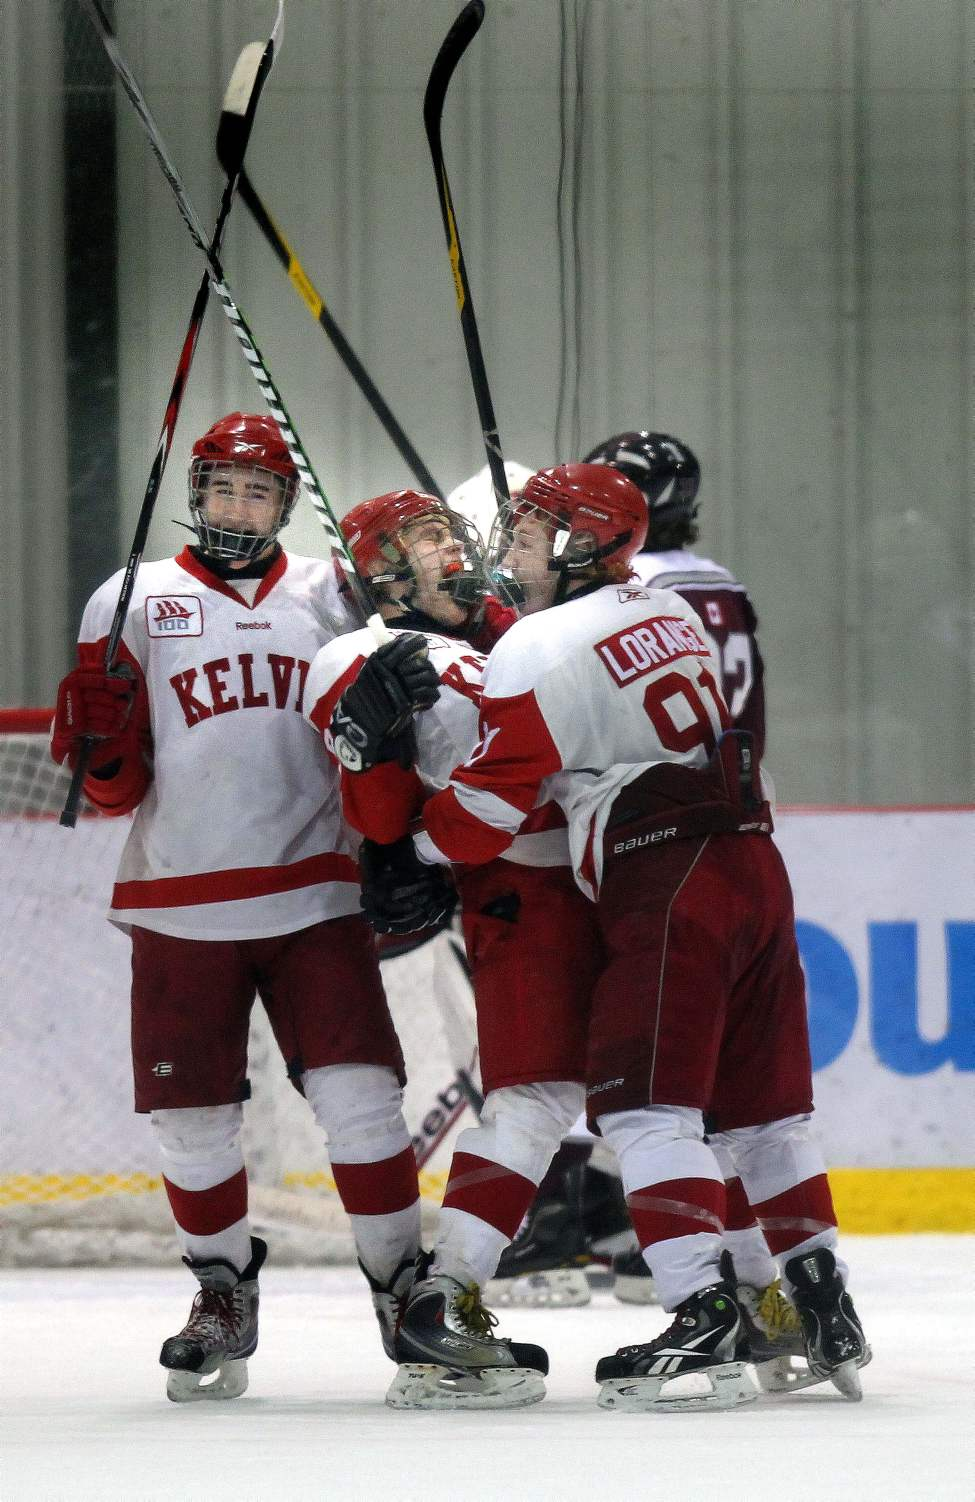 Kelvin Clipper #89 Scott Douglas (center) celebrates with #11 Dylan Allary  (left) and  #91 Mike Lorange after he scored the team's opening point to tie St Paul's at 1-1 in the first period of playoff finals Monday. March 6, 2012  (Phil Hossack / Winnipeg Free Press)